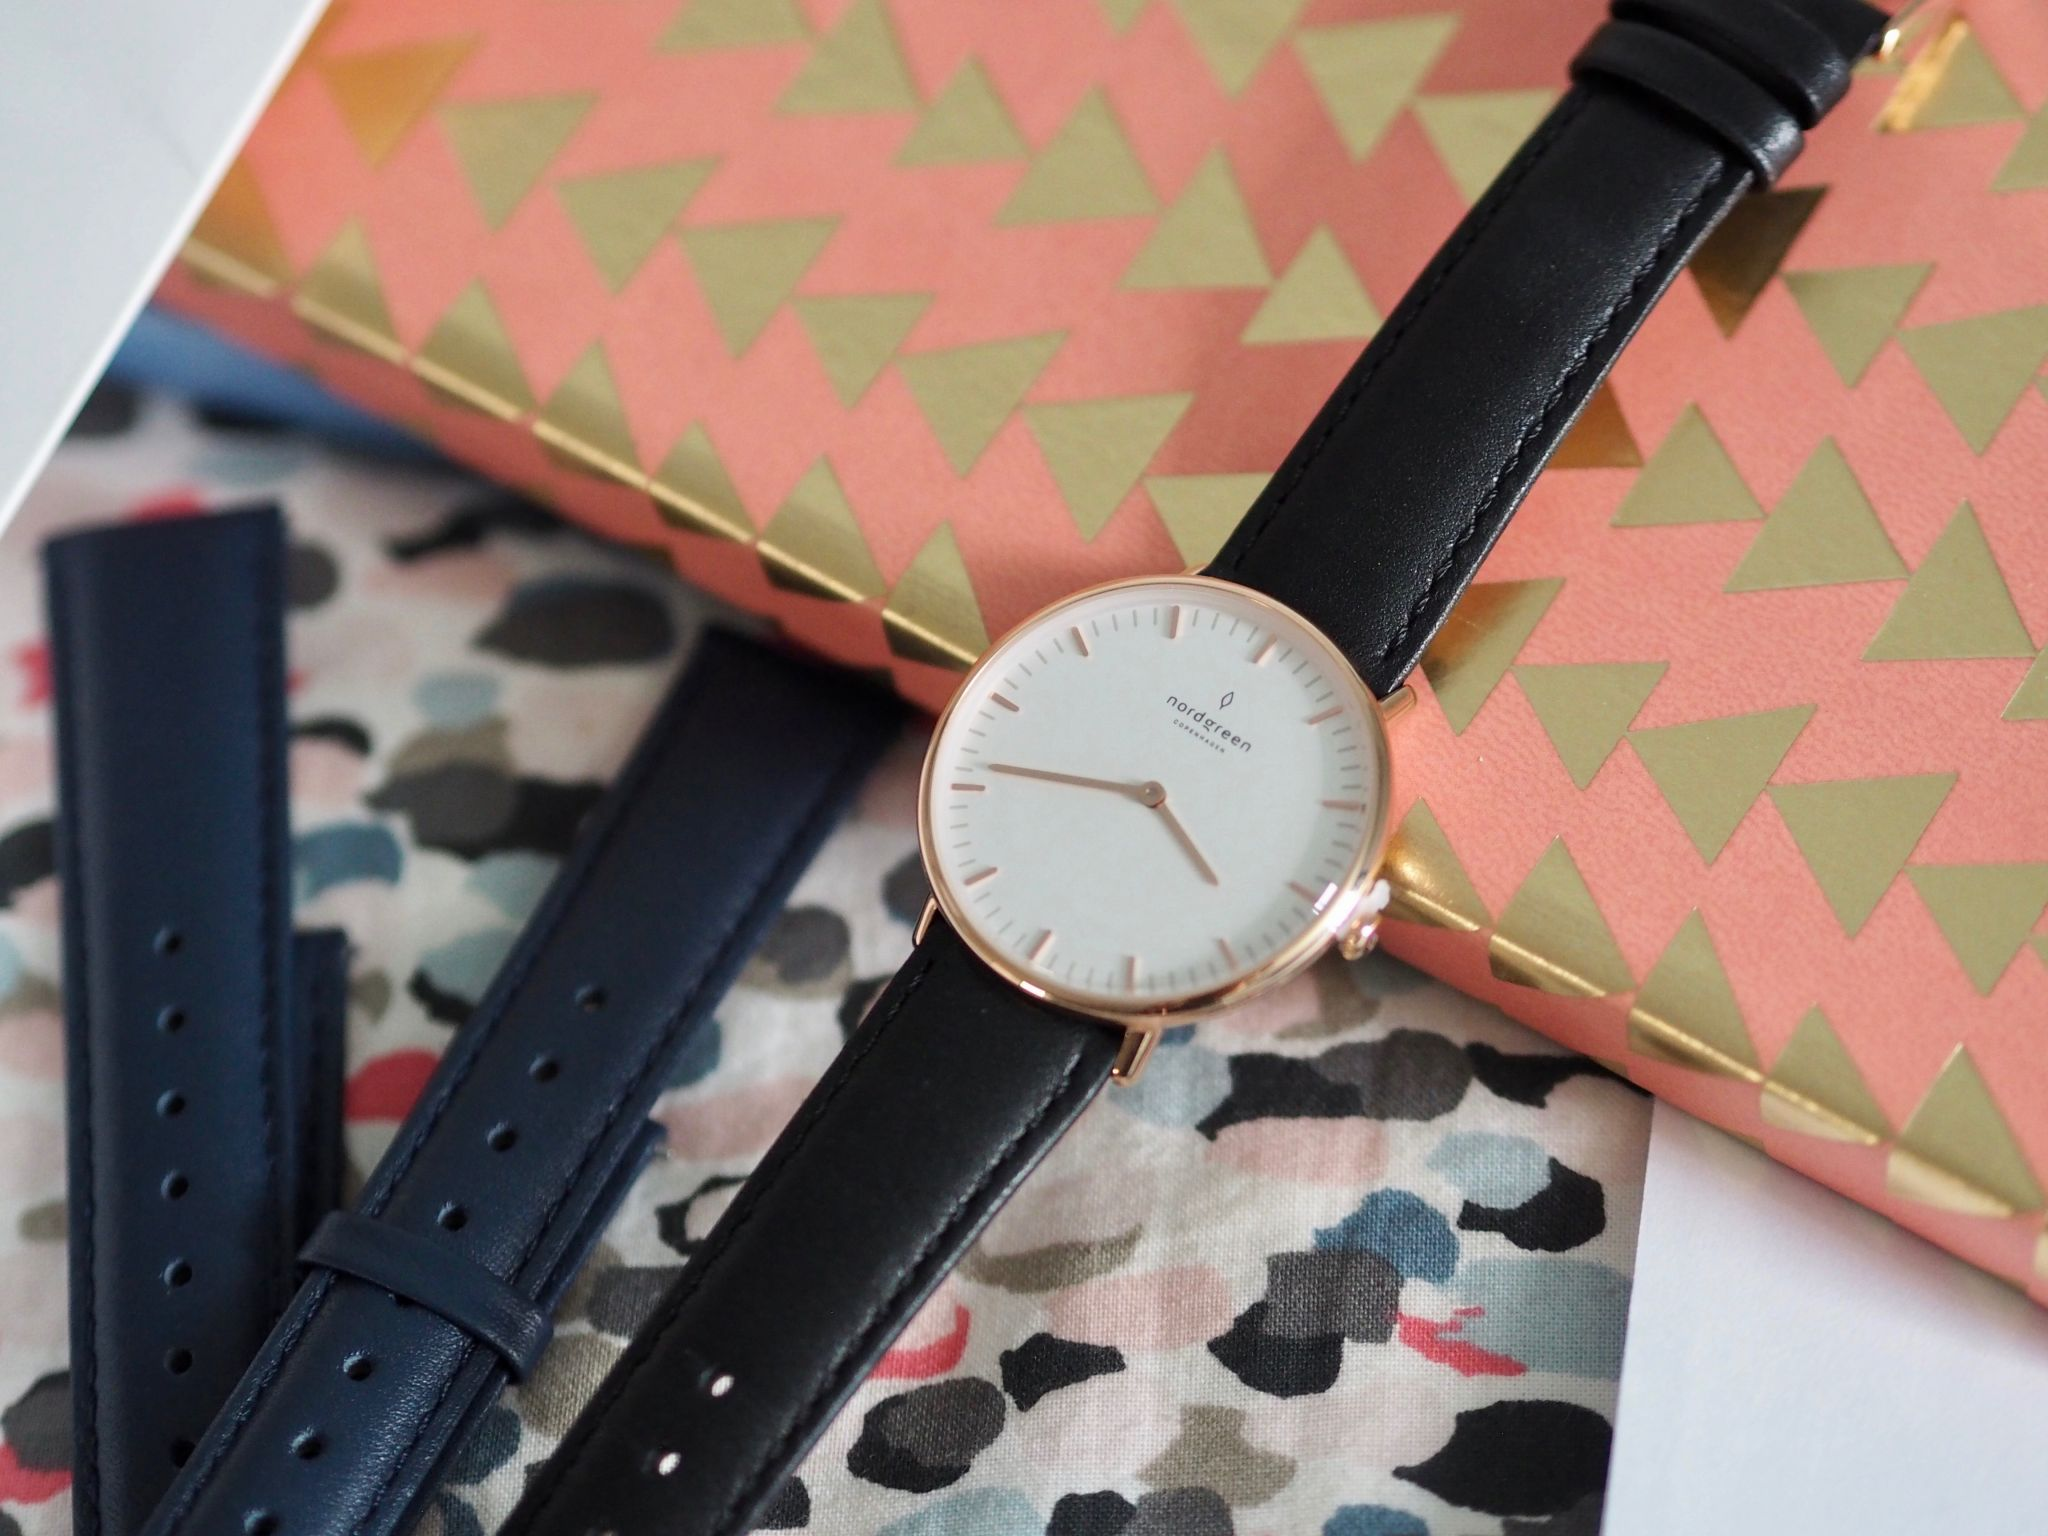 Learning to love watches with nordgreen